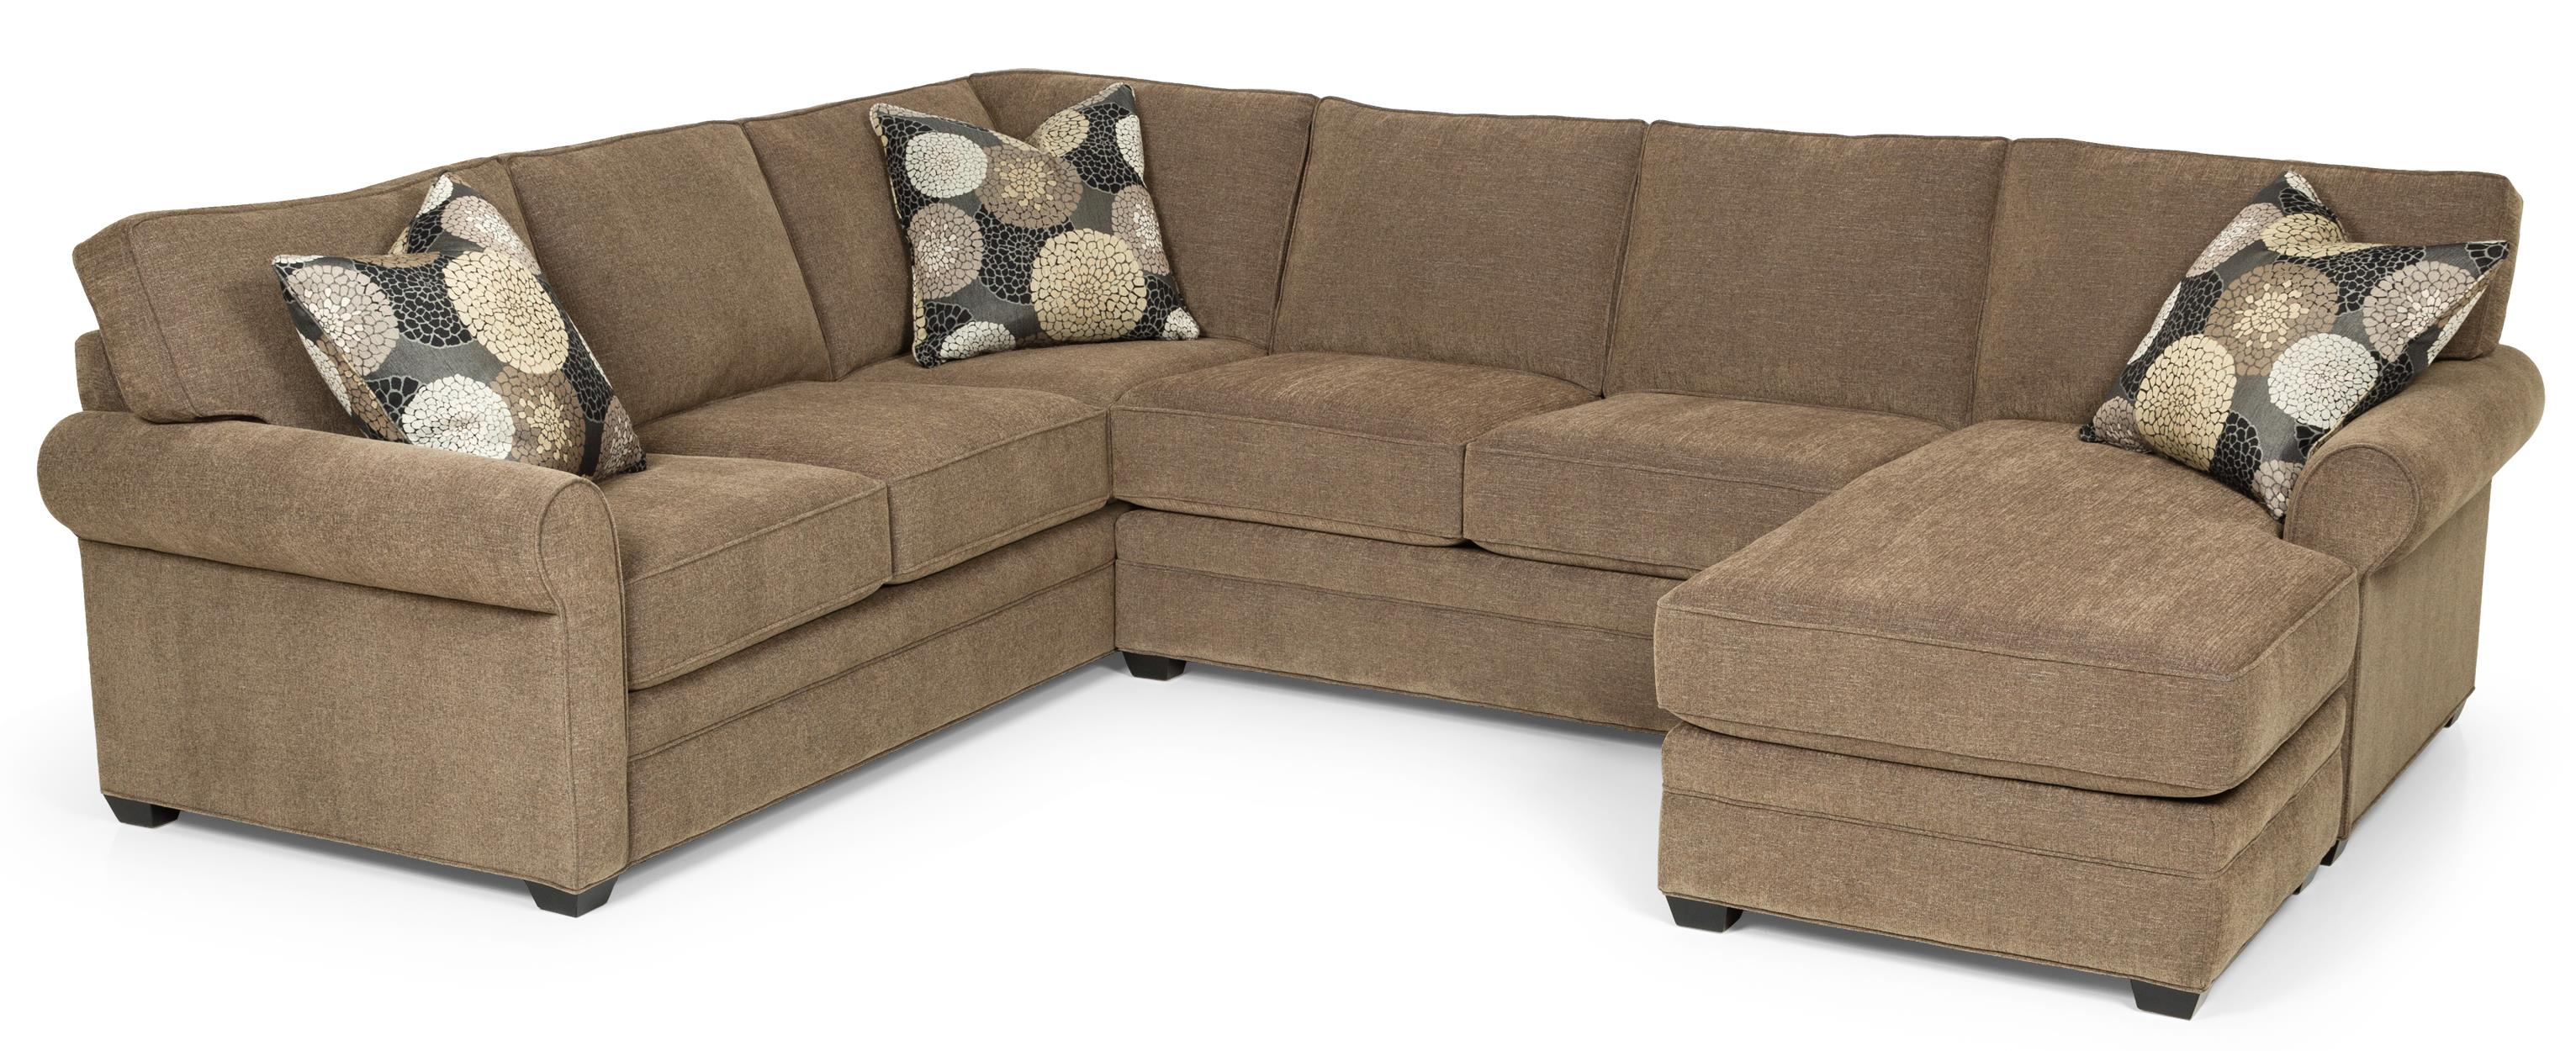 283 Sectional Sofa by Stanton at Wilson's Furniture